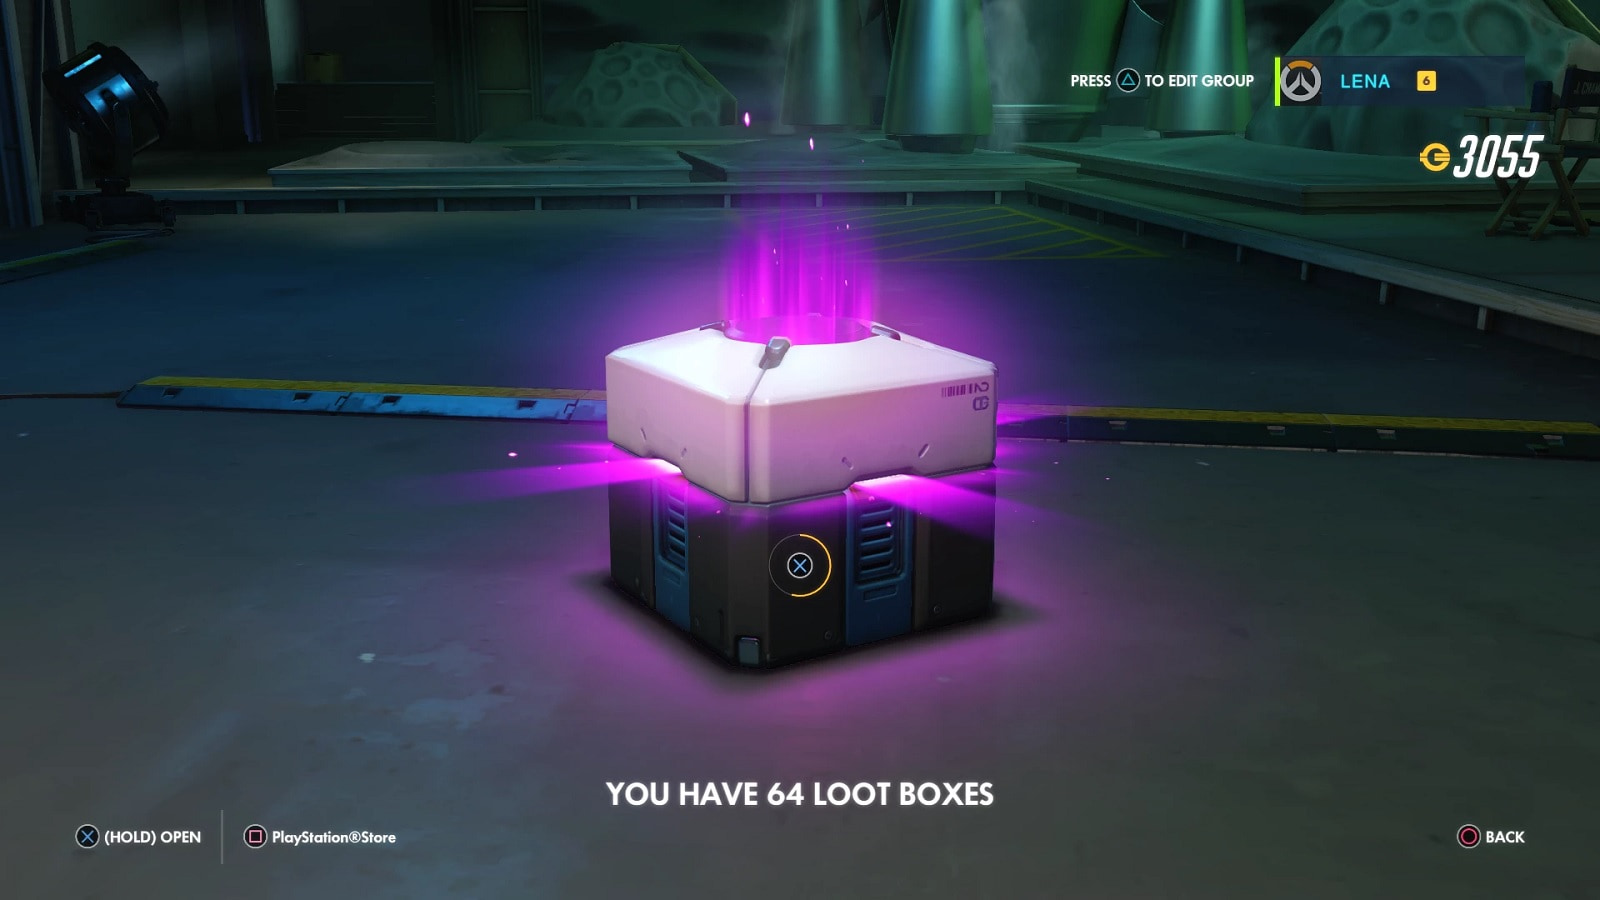 loot boxes in video games